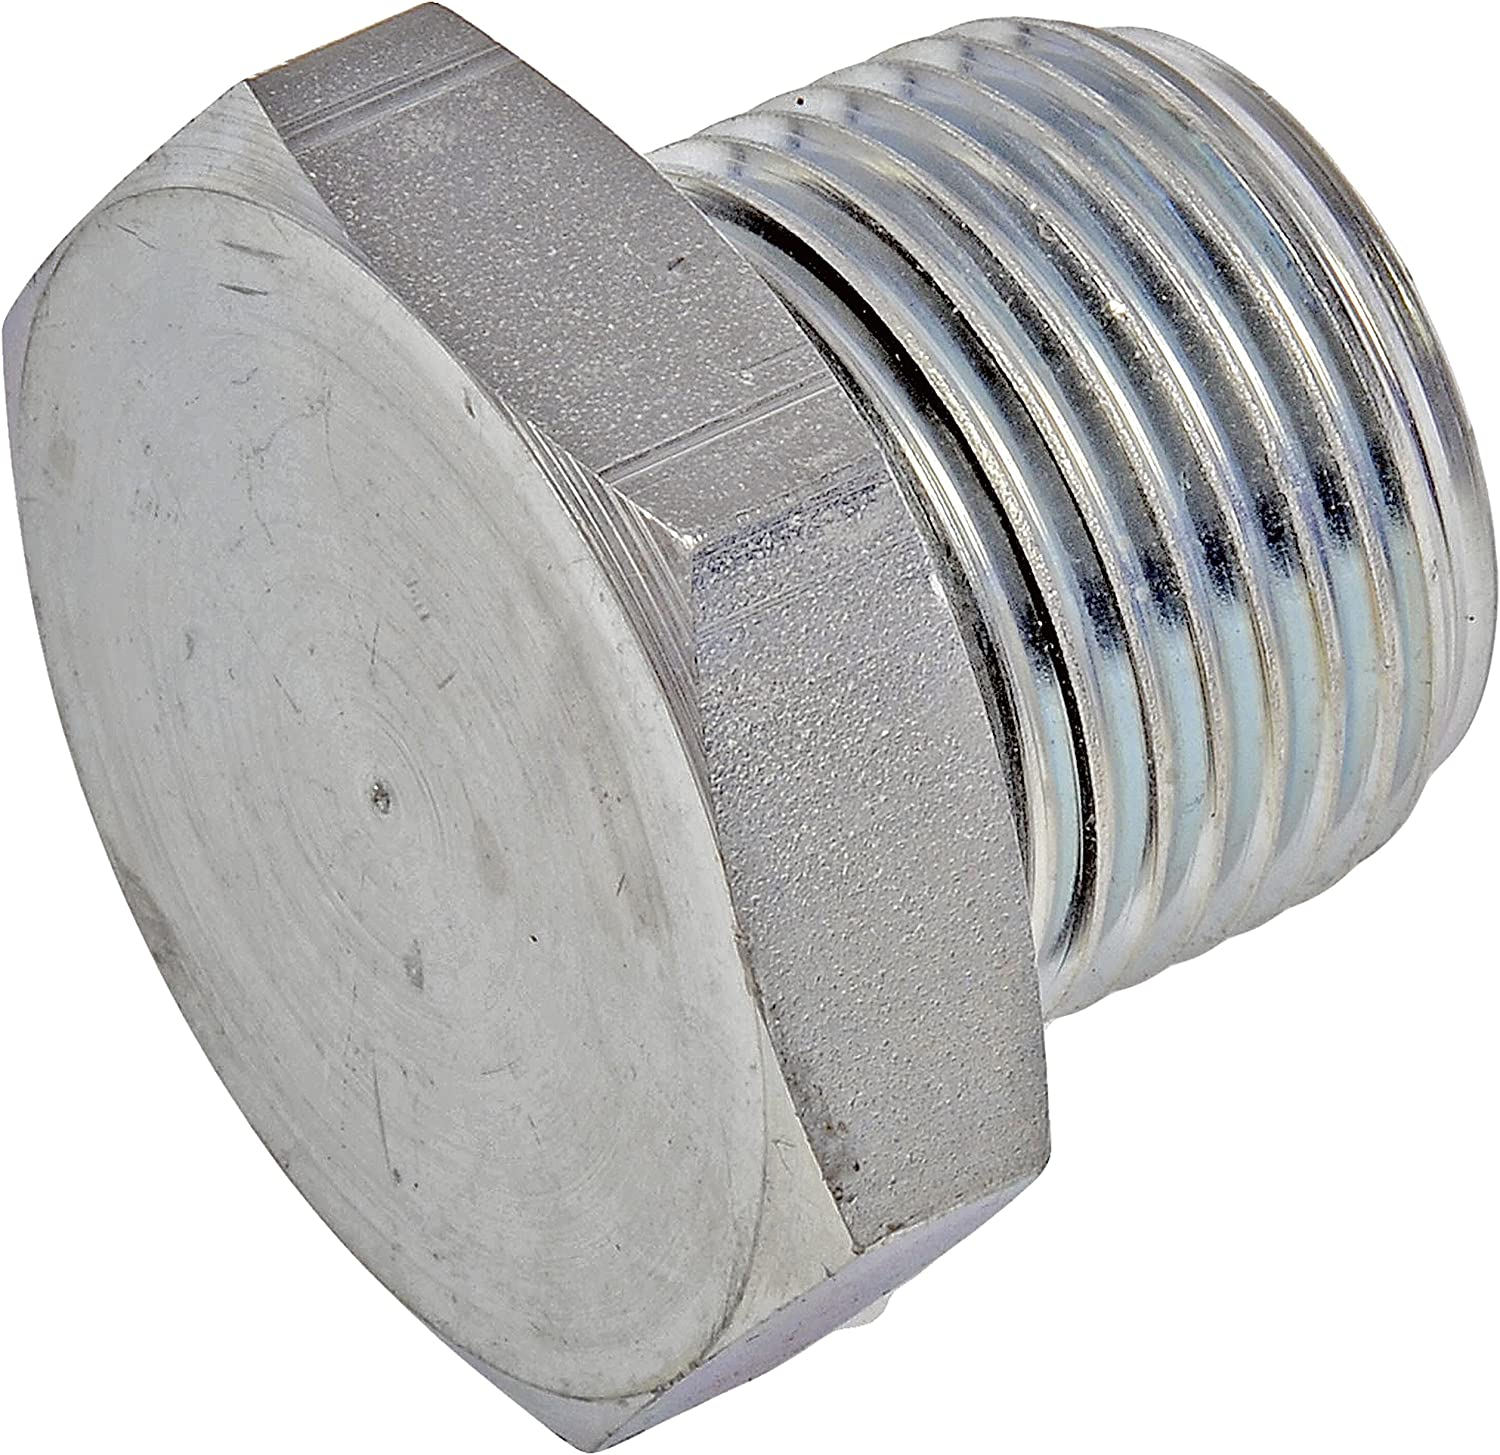 Dorman Max 64% OFF Recommended 090-5001CD Oil Plug Drain